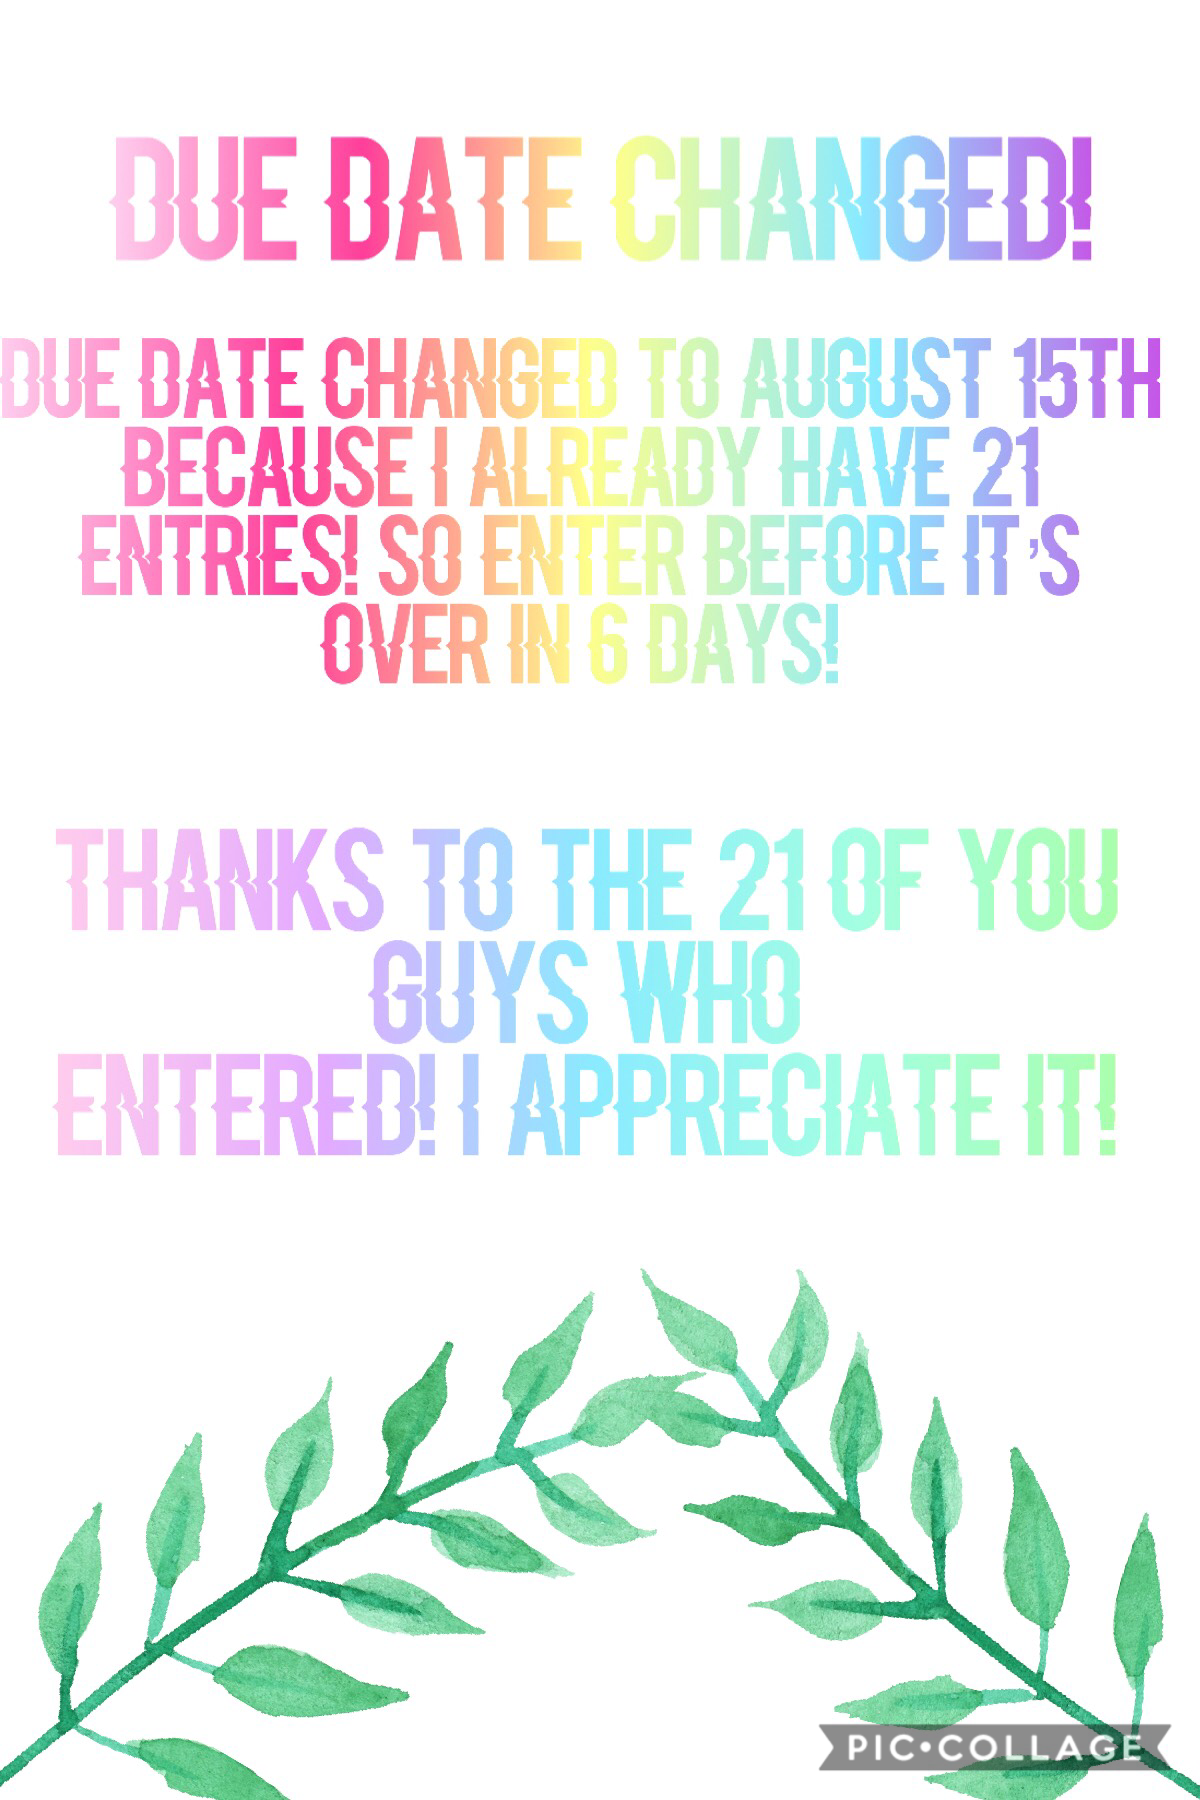 Tap Due date for the contest changed to August 15 cuz I already have a LOT of entires! 💕 xox Btw I GOT A FANPAGE it's so exciting! Tysm to whoever did that! It's so kind of u